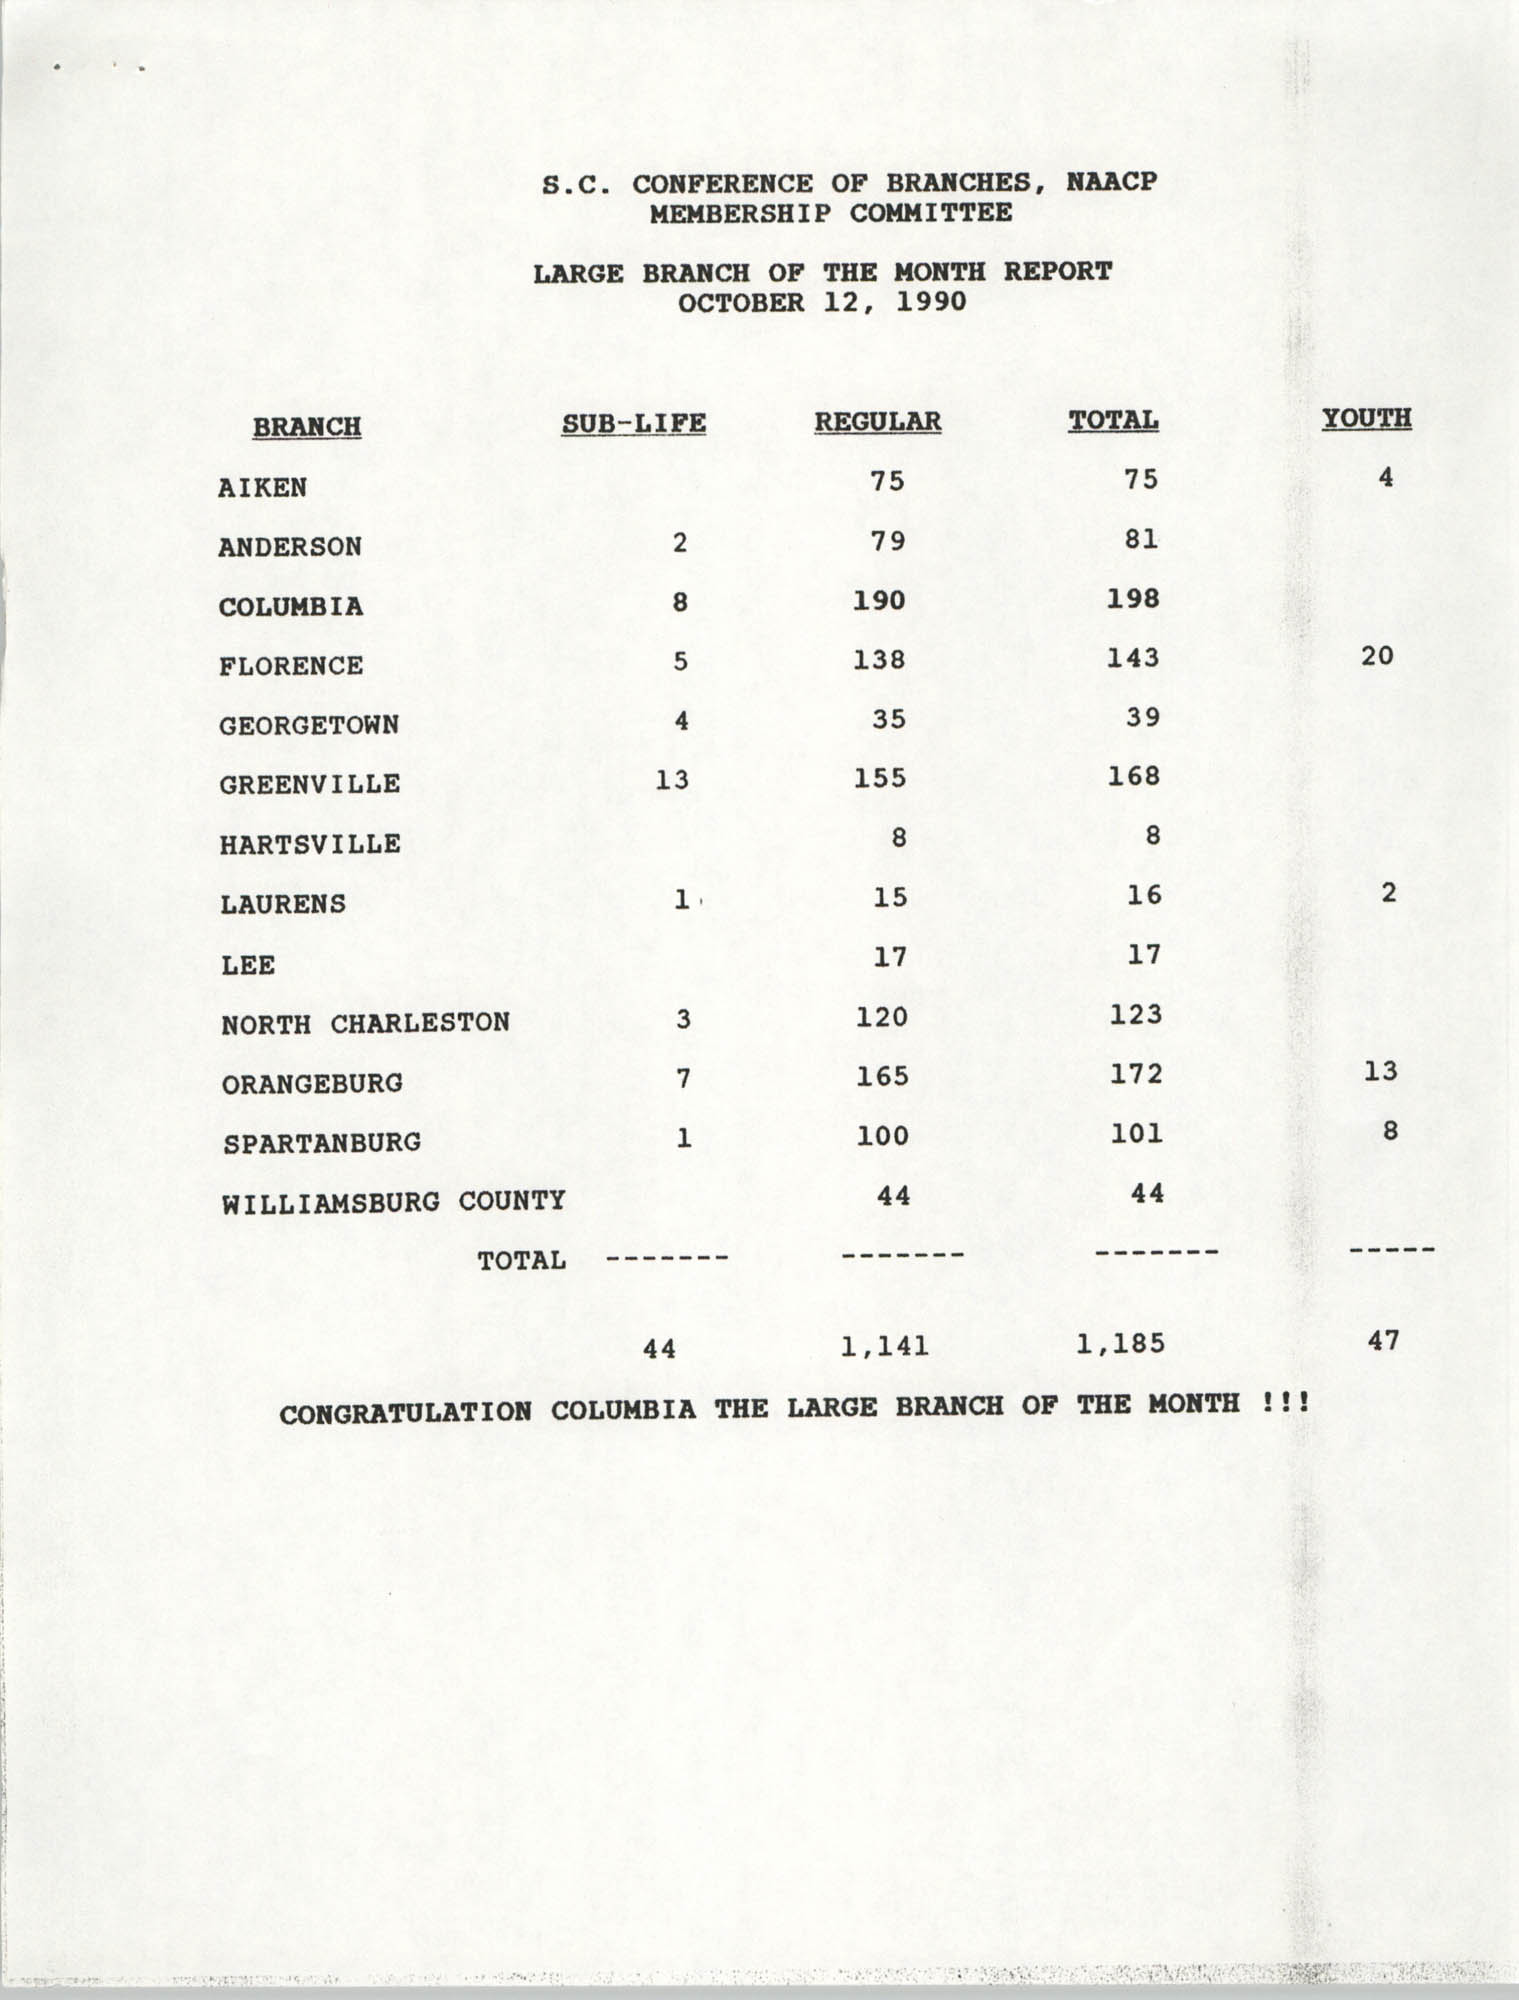 Large and Small Branch of the Month Reports, South Carolina Conference of Branches of the NAACP, October 12, 1990